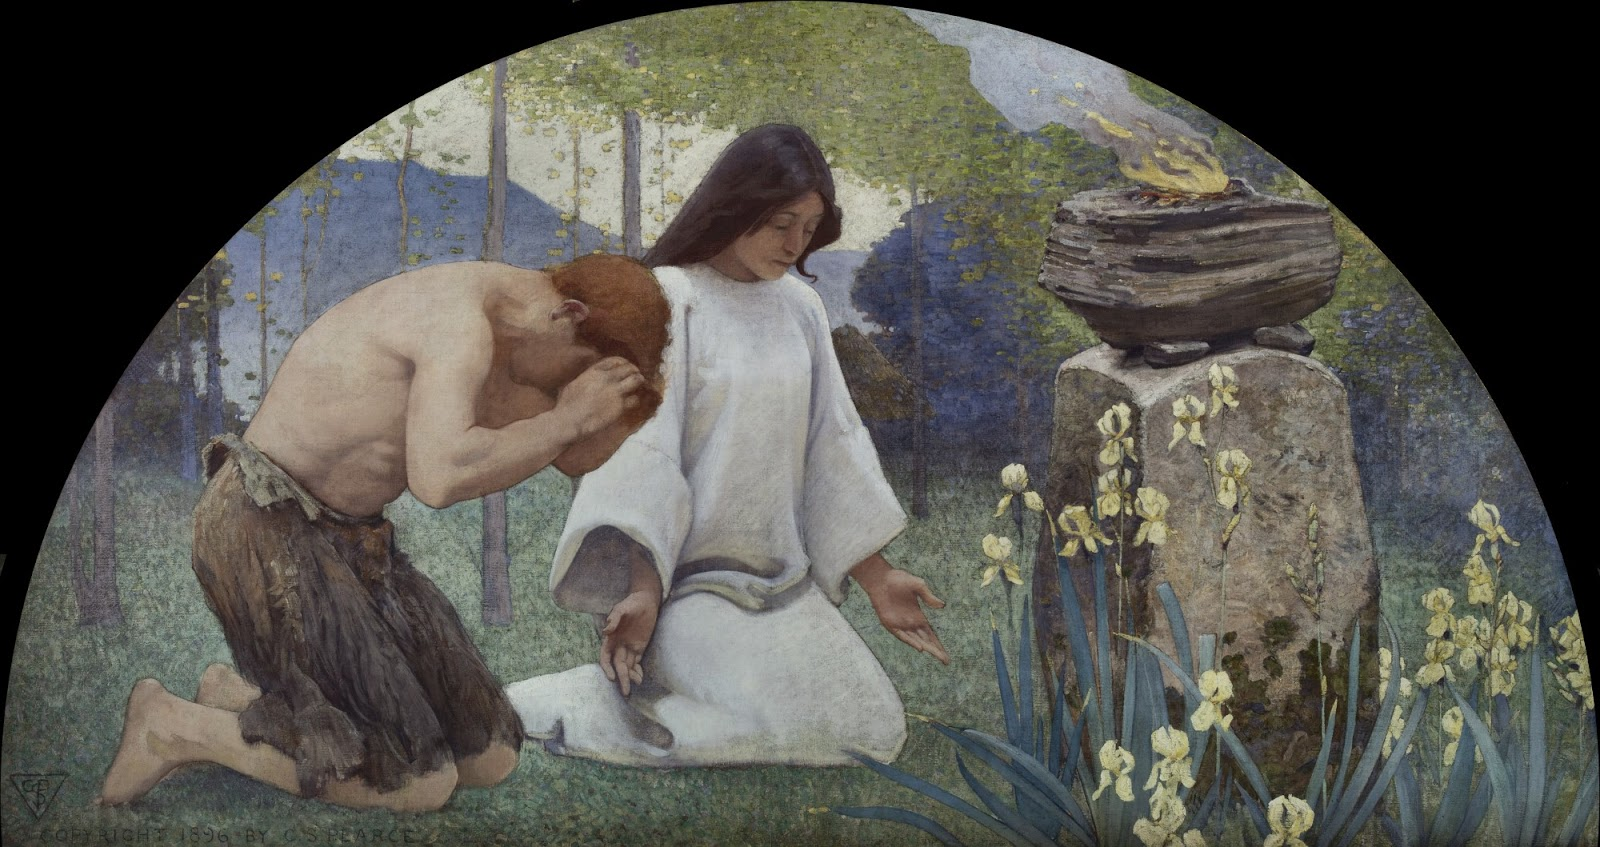 Charles  Sprague  Pearce  mural  library  of  congress  washington  religion